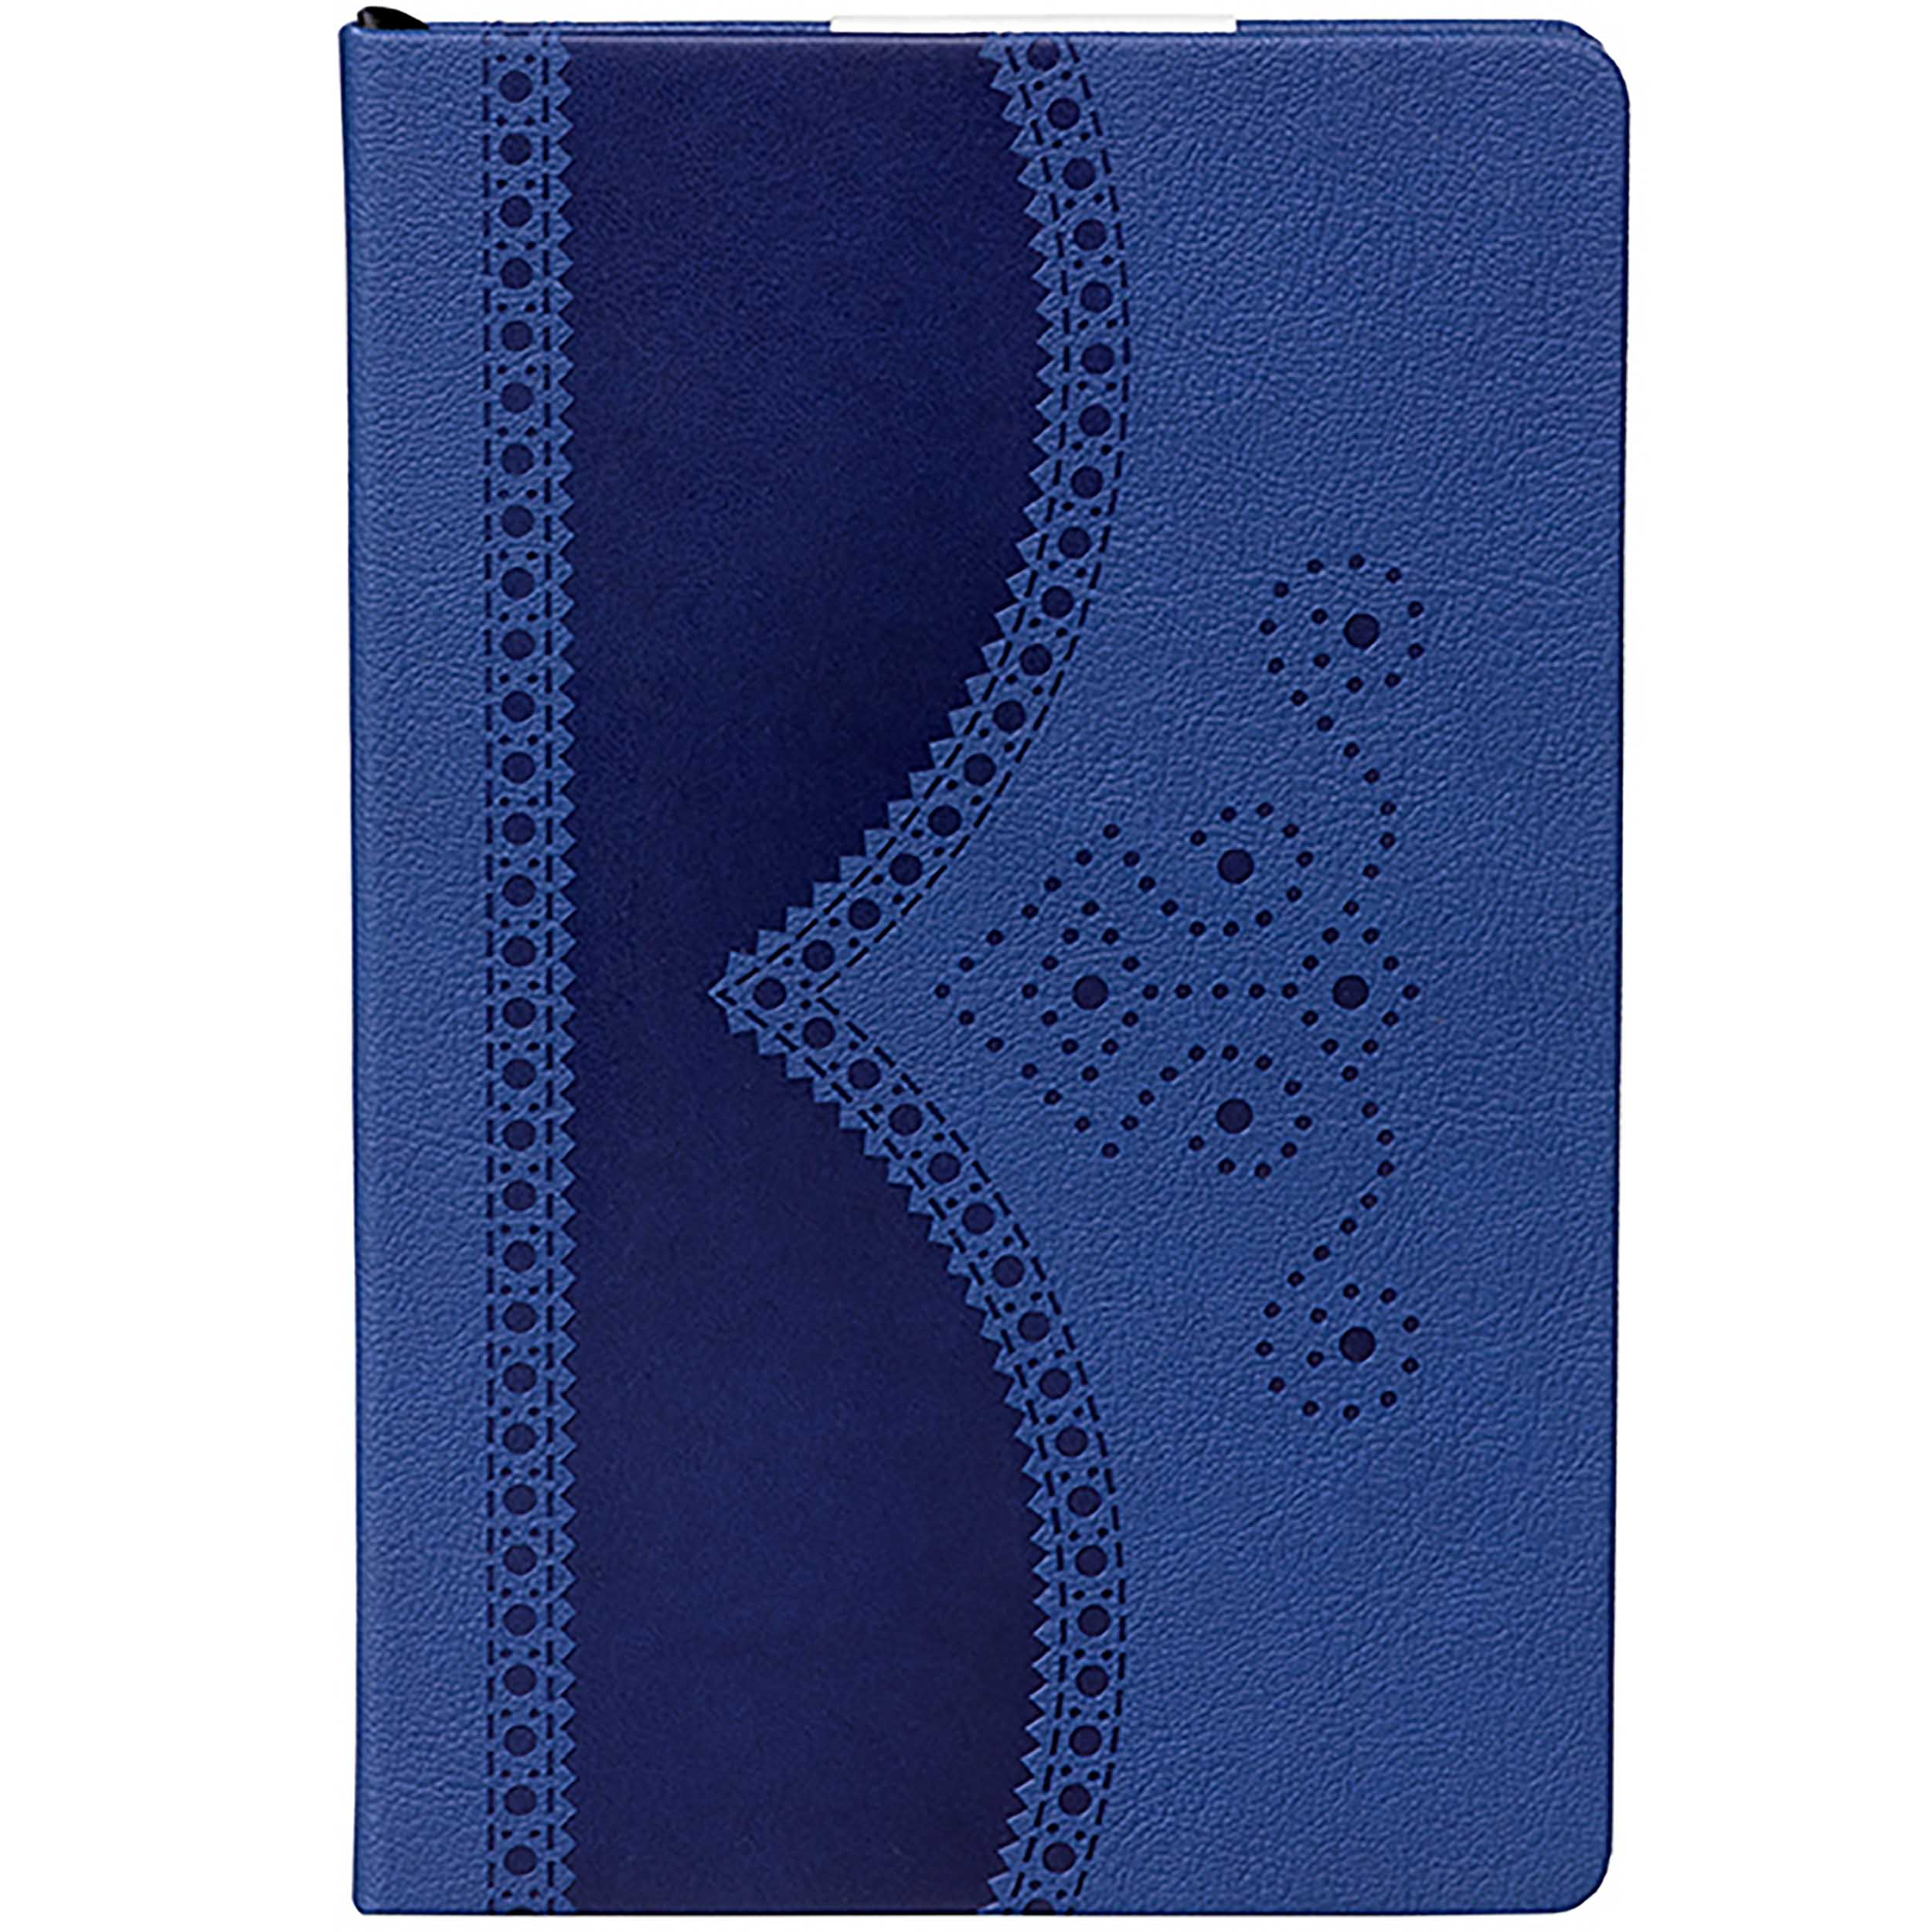 A5 Brogue Notebook, Textured Blue